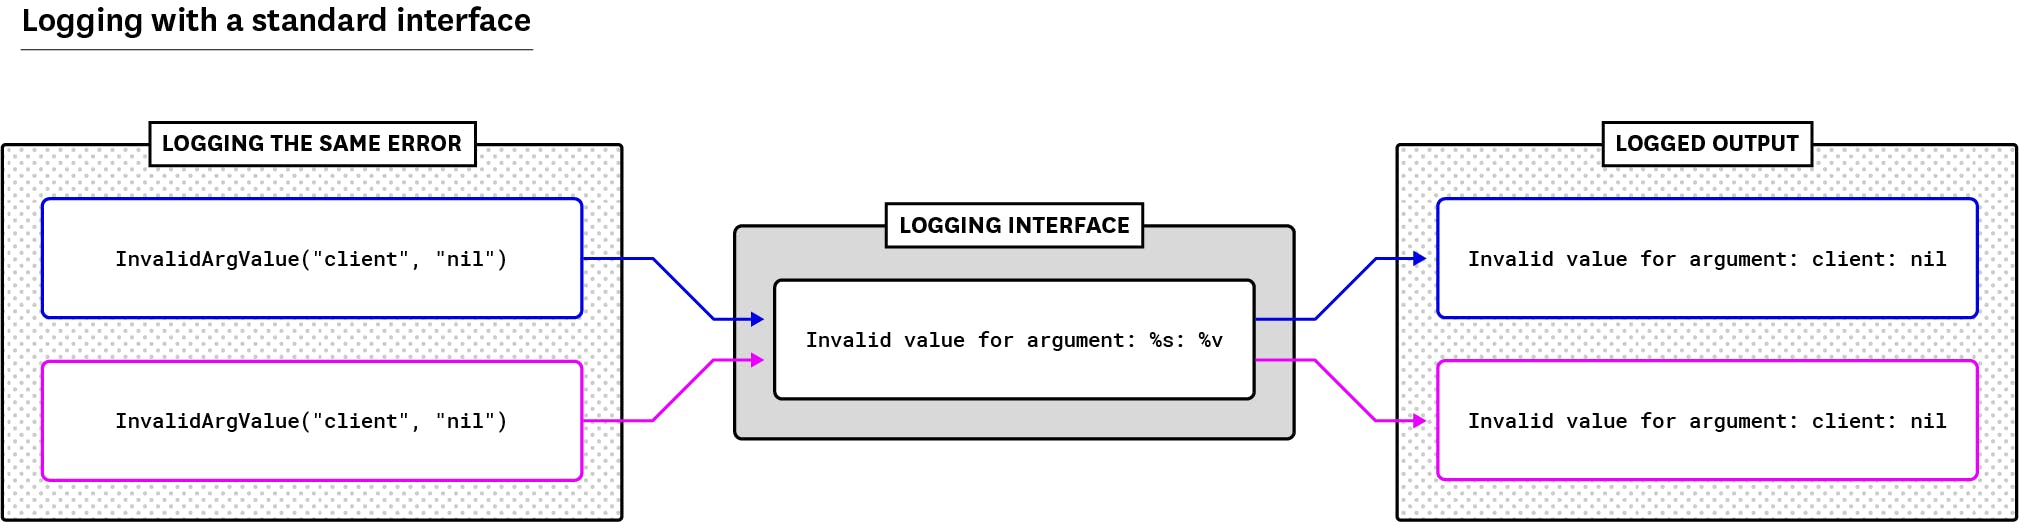 How to collect, standardize, and centralize Golang logs